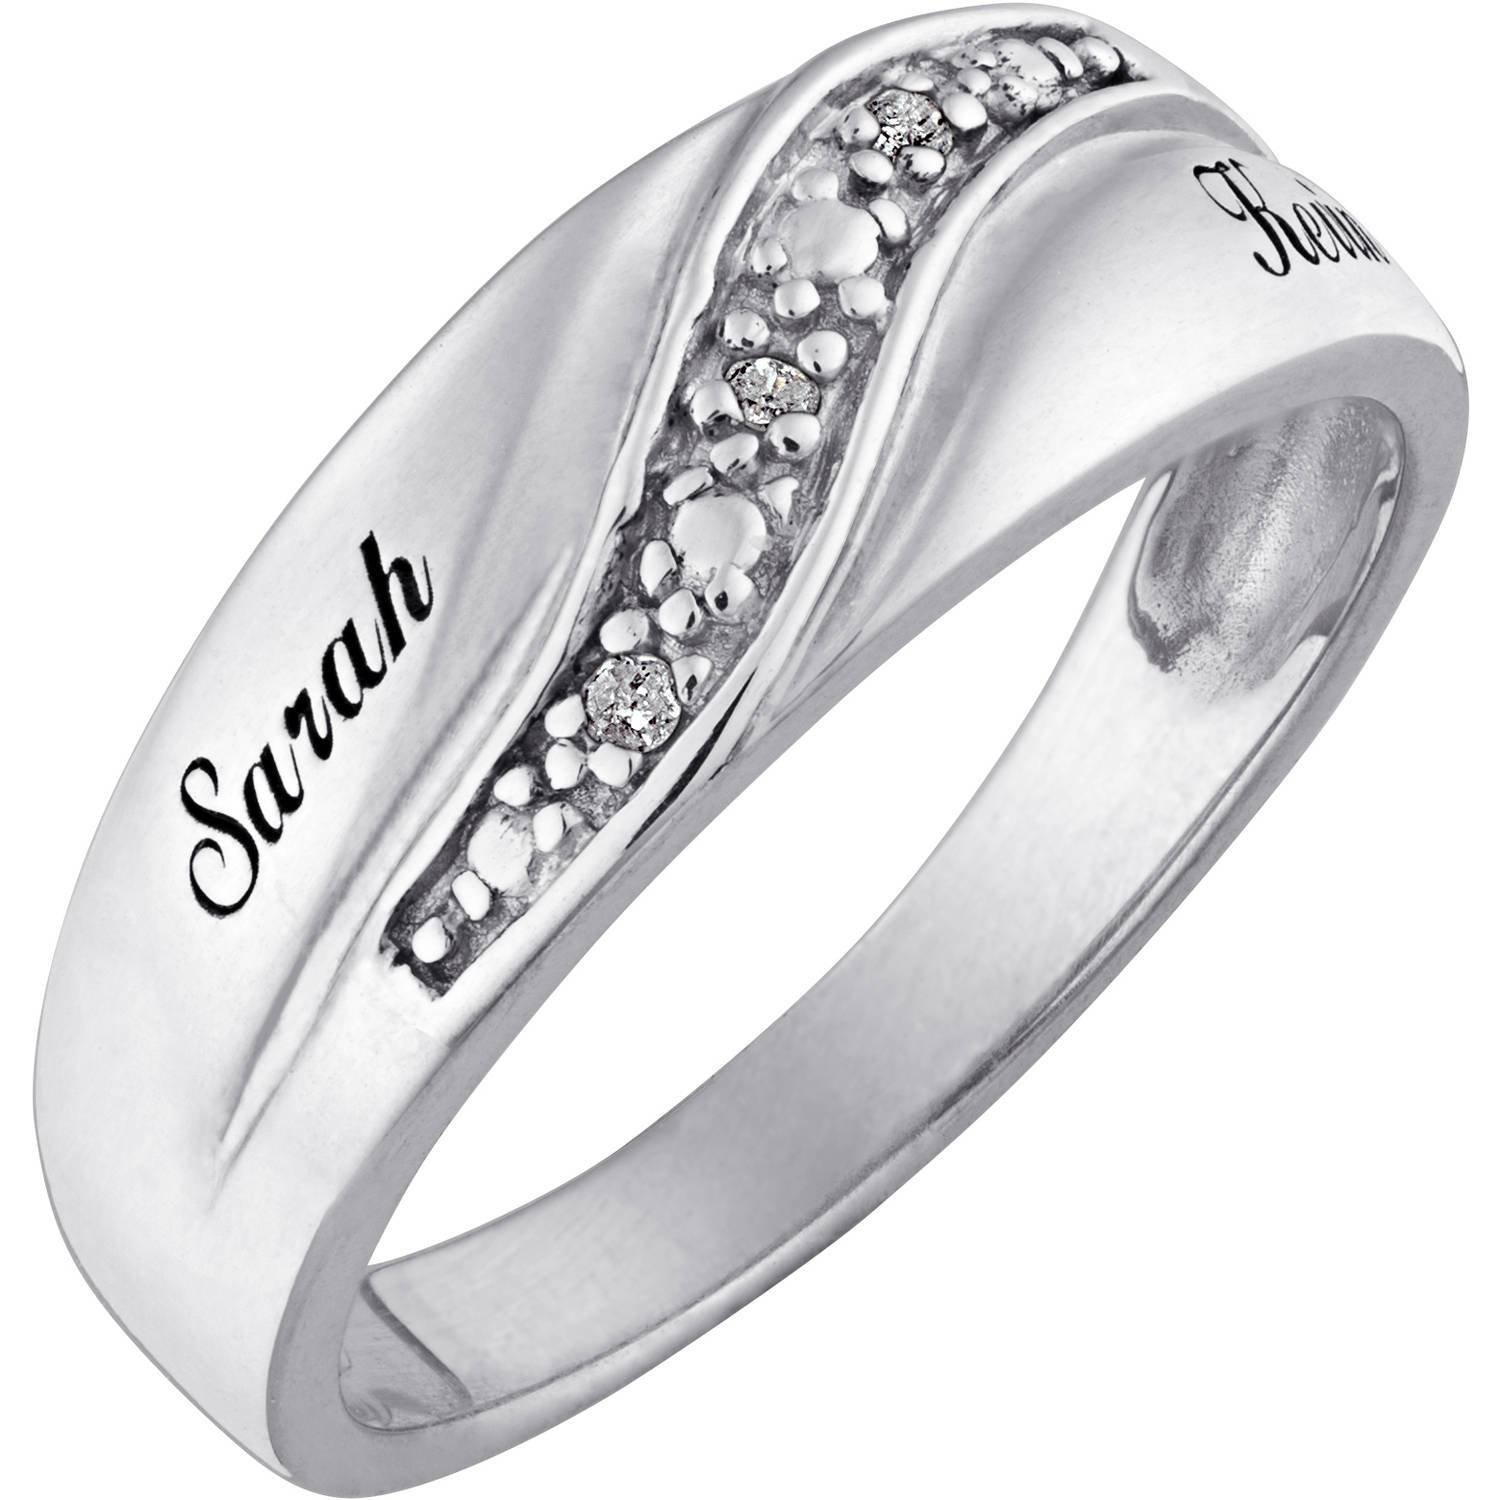 Personalized Sterling Silver Mens Diamond Accent Name Wedding Band Throughout Walmart Men's Wedding Bands (Gallery 4 of 15)